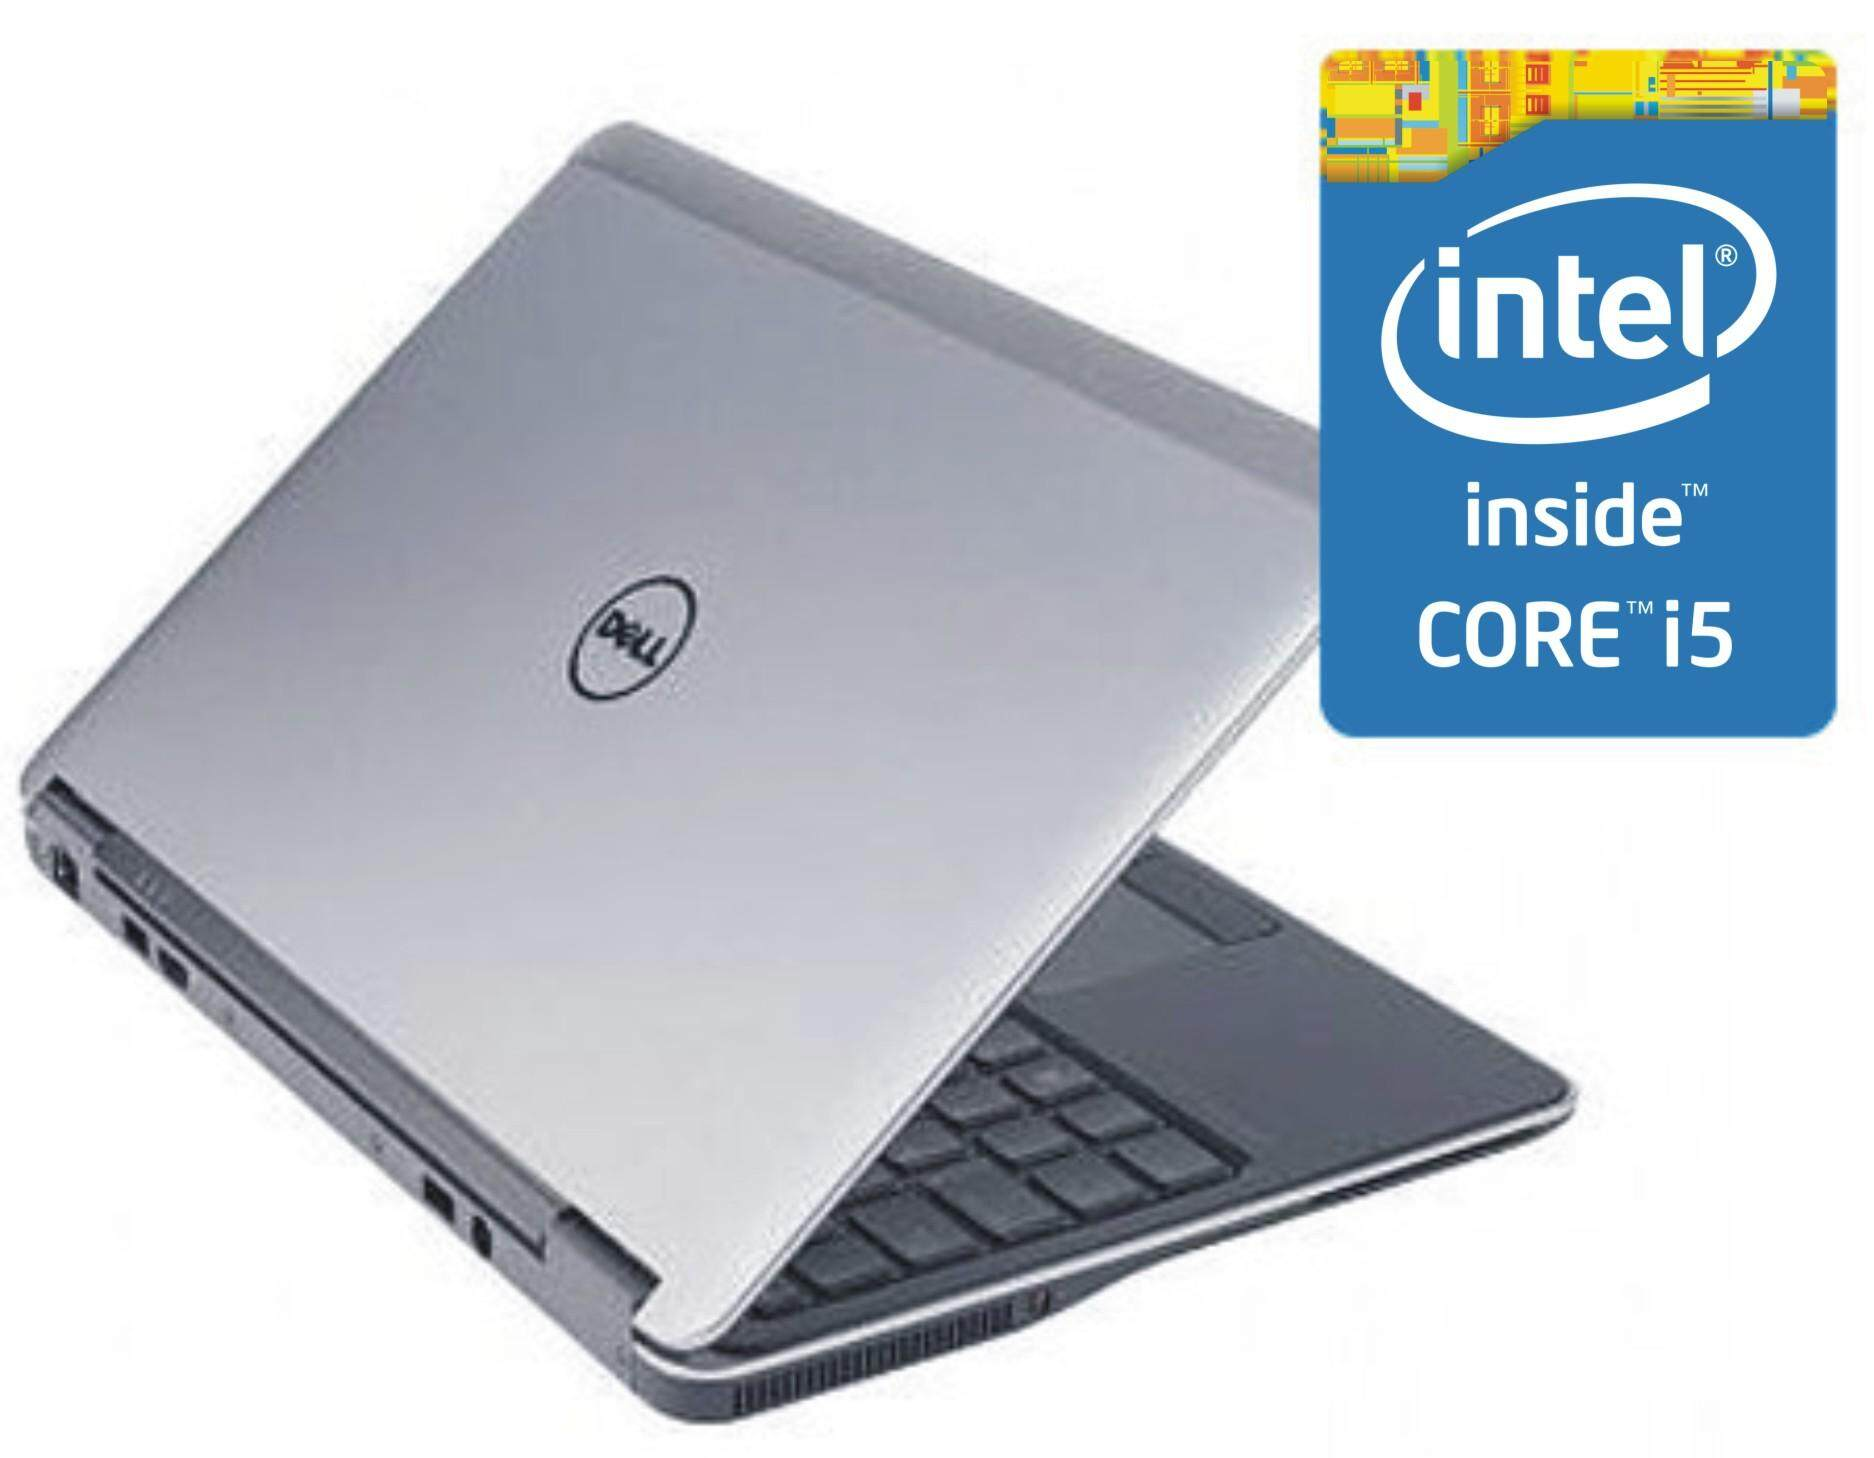 Dell Latitude Ultrabook E7240 - Core i5-4th Gen - 4 GB RAM - 128 GB SSD - 12.5-inch - (Imported) FREE ORIGINAL Malaysia